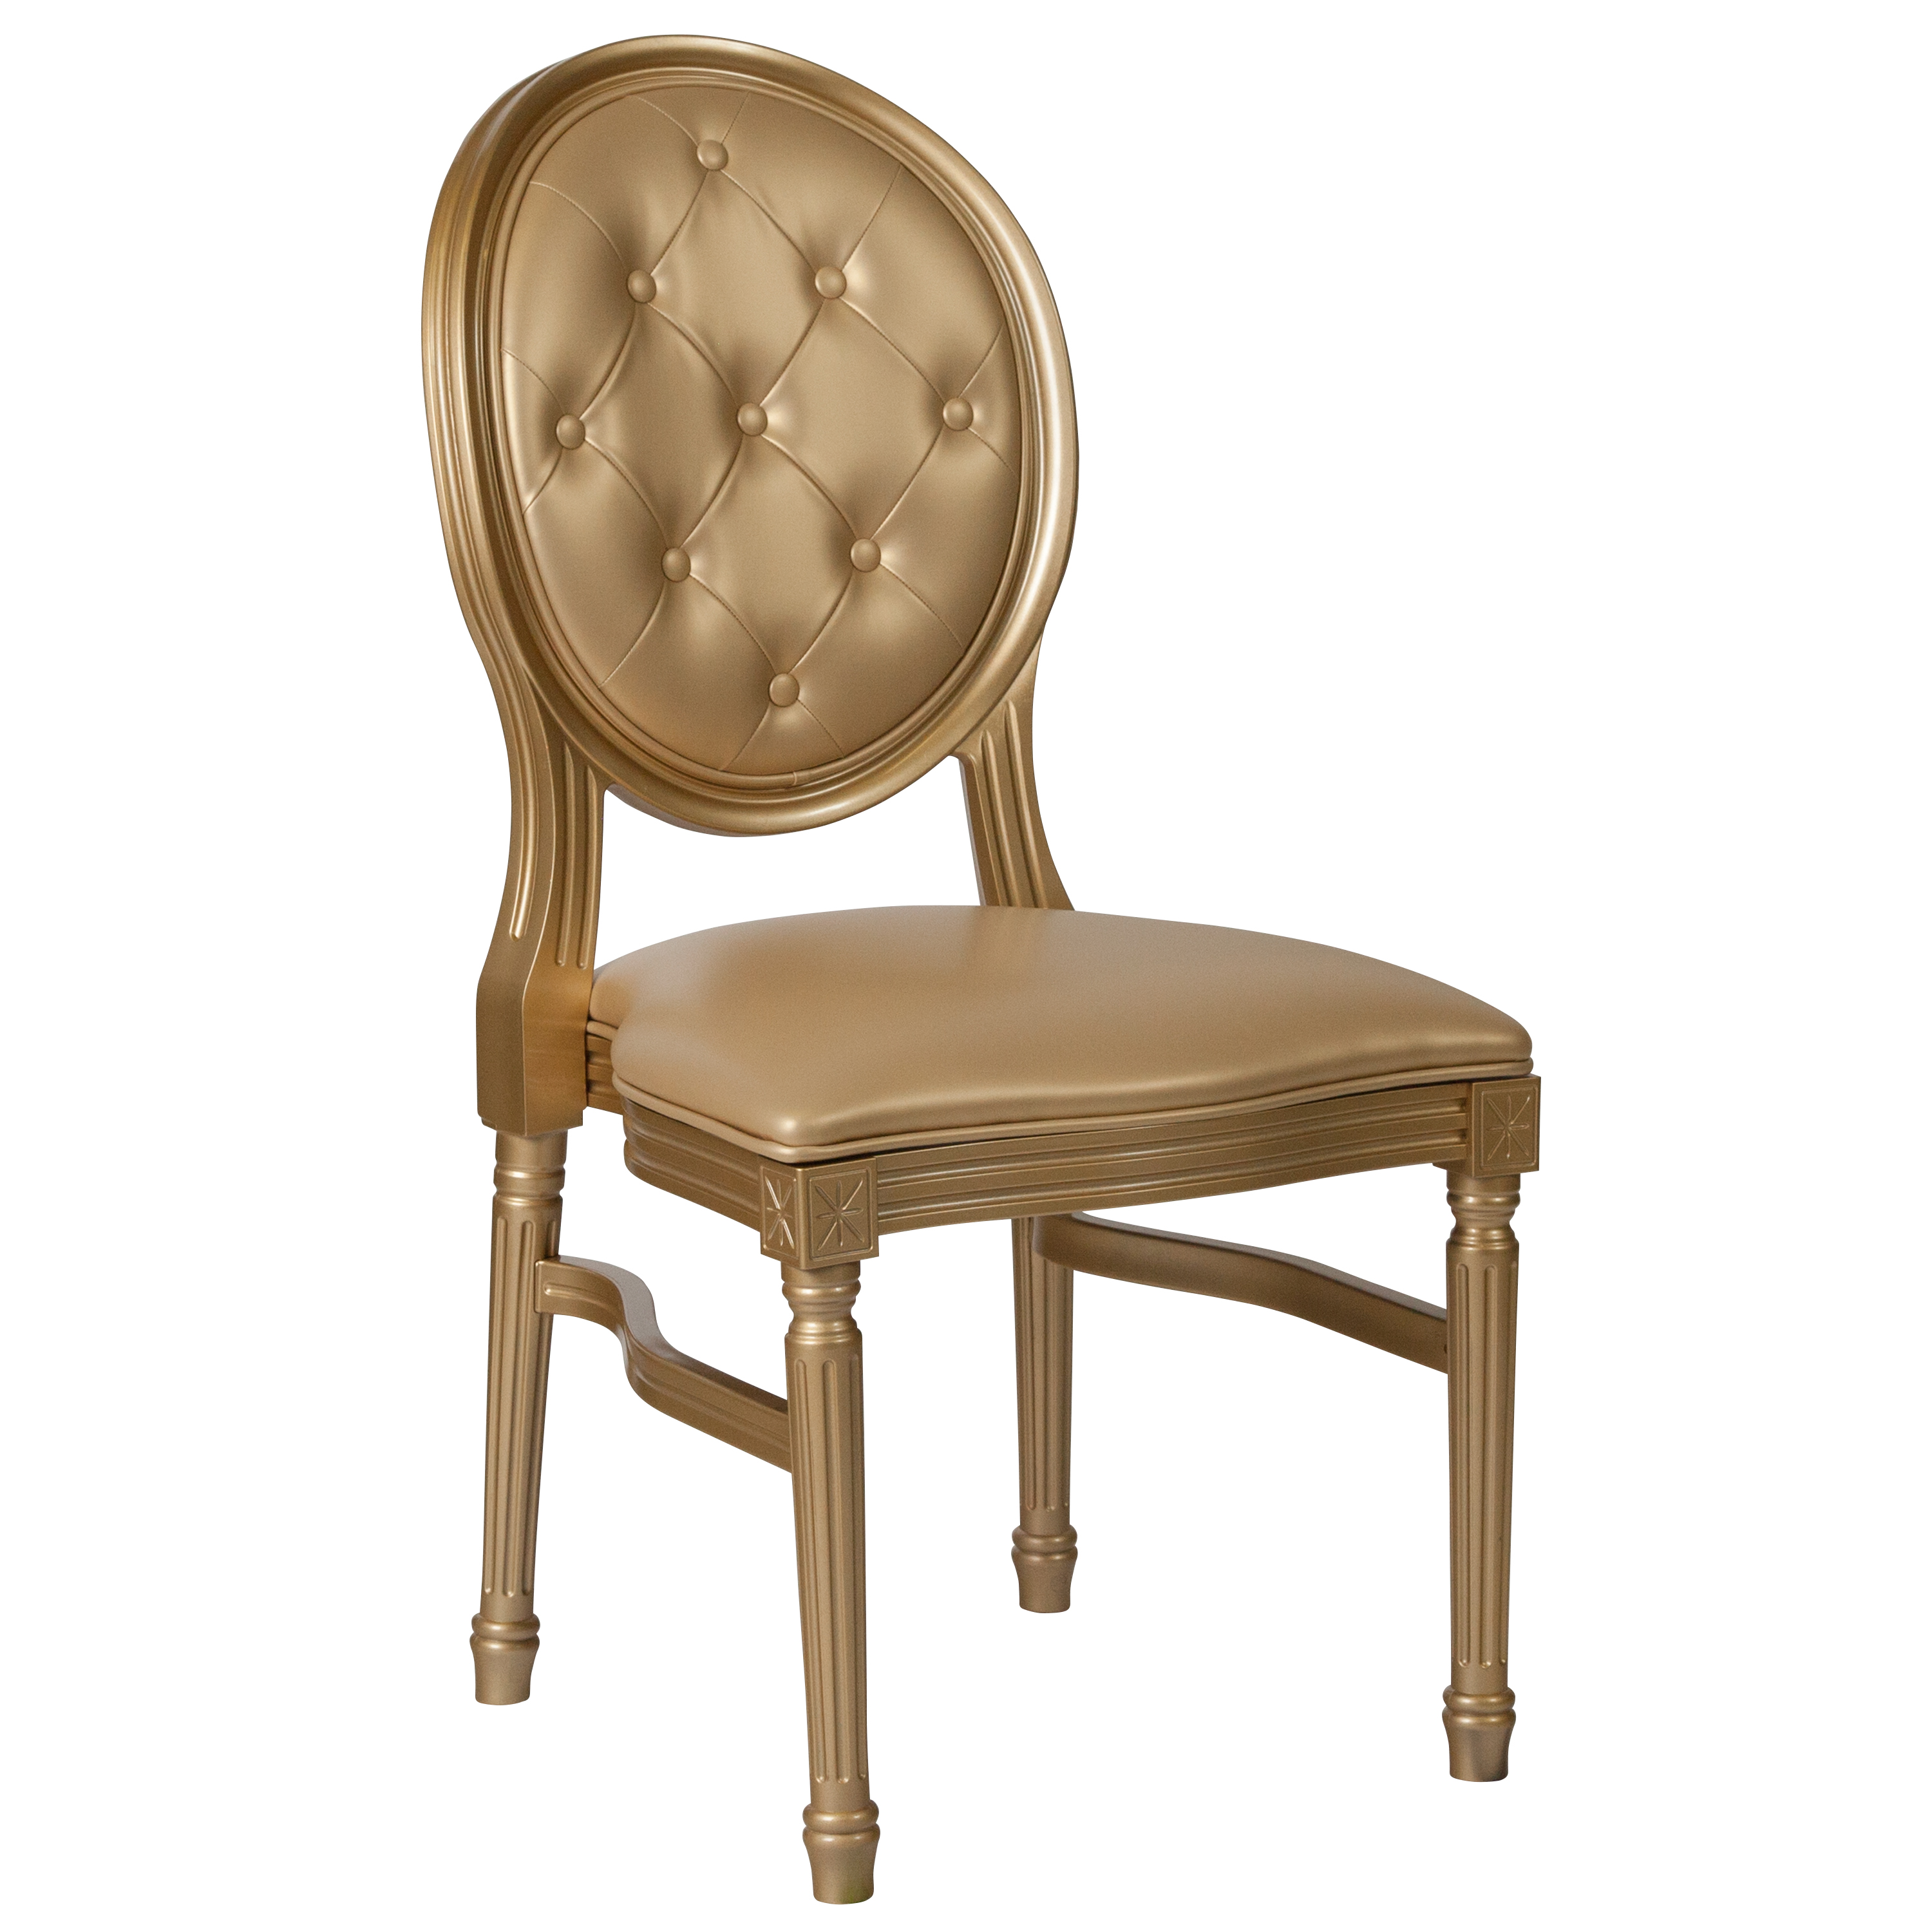 Flash Furniture HERCULES Series 900 lb. Capacity King Louis Chair with Tufted Back, Gold Vinyl Seat and Gold Frame